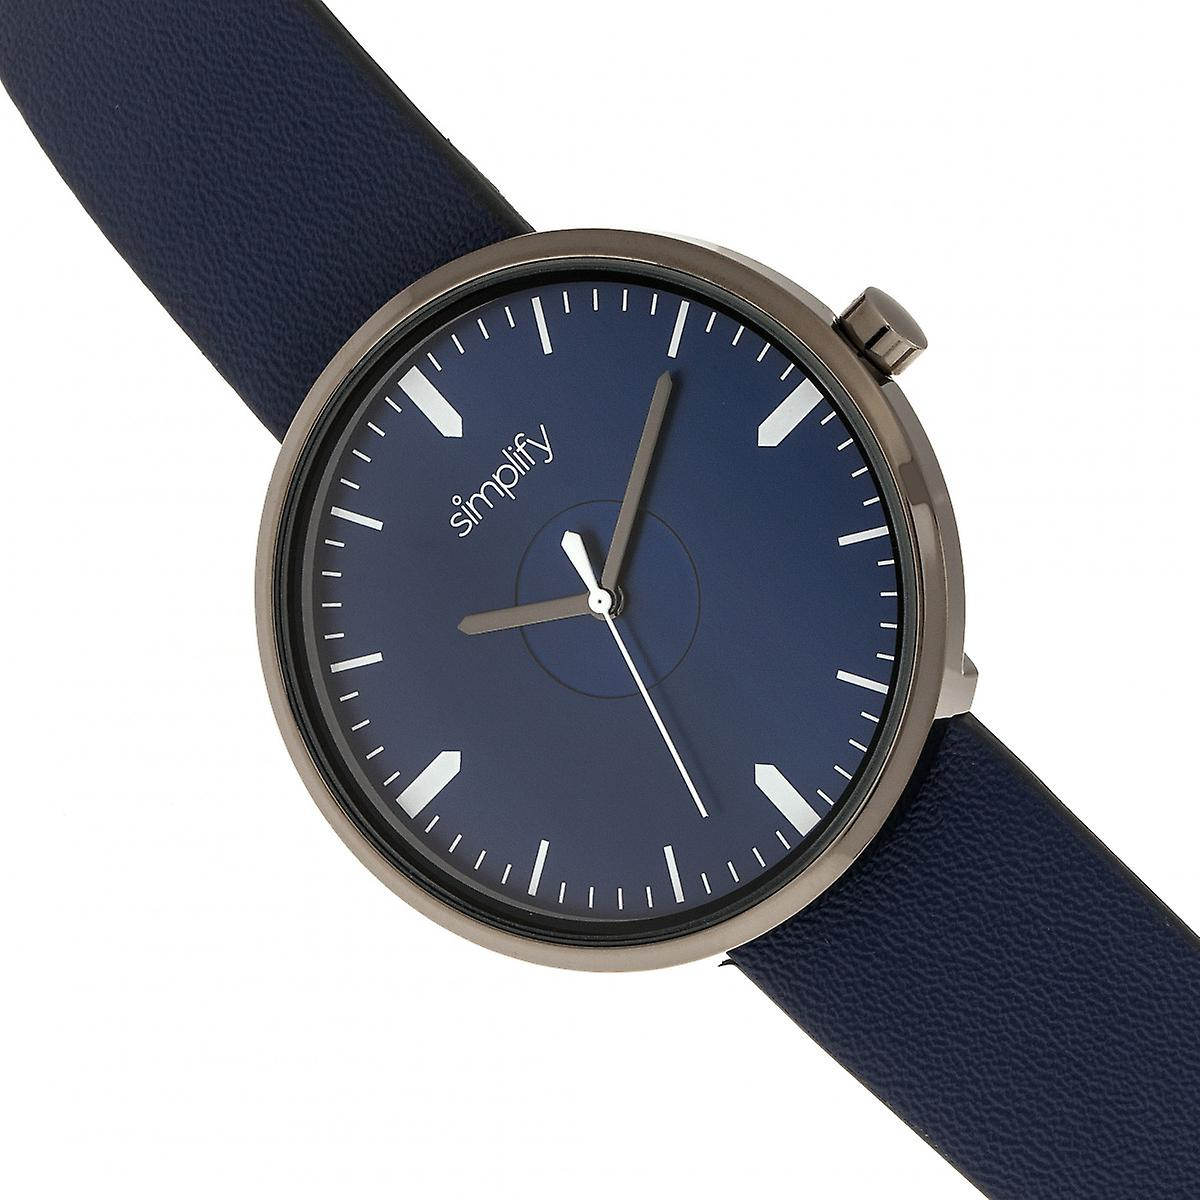 Simplify The 4500 Leather-Band Watch - Gunmetal/Navy